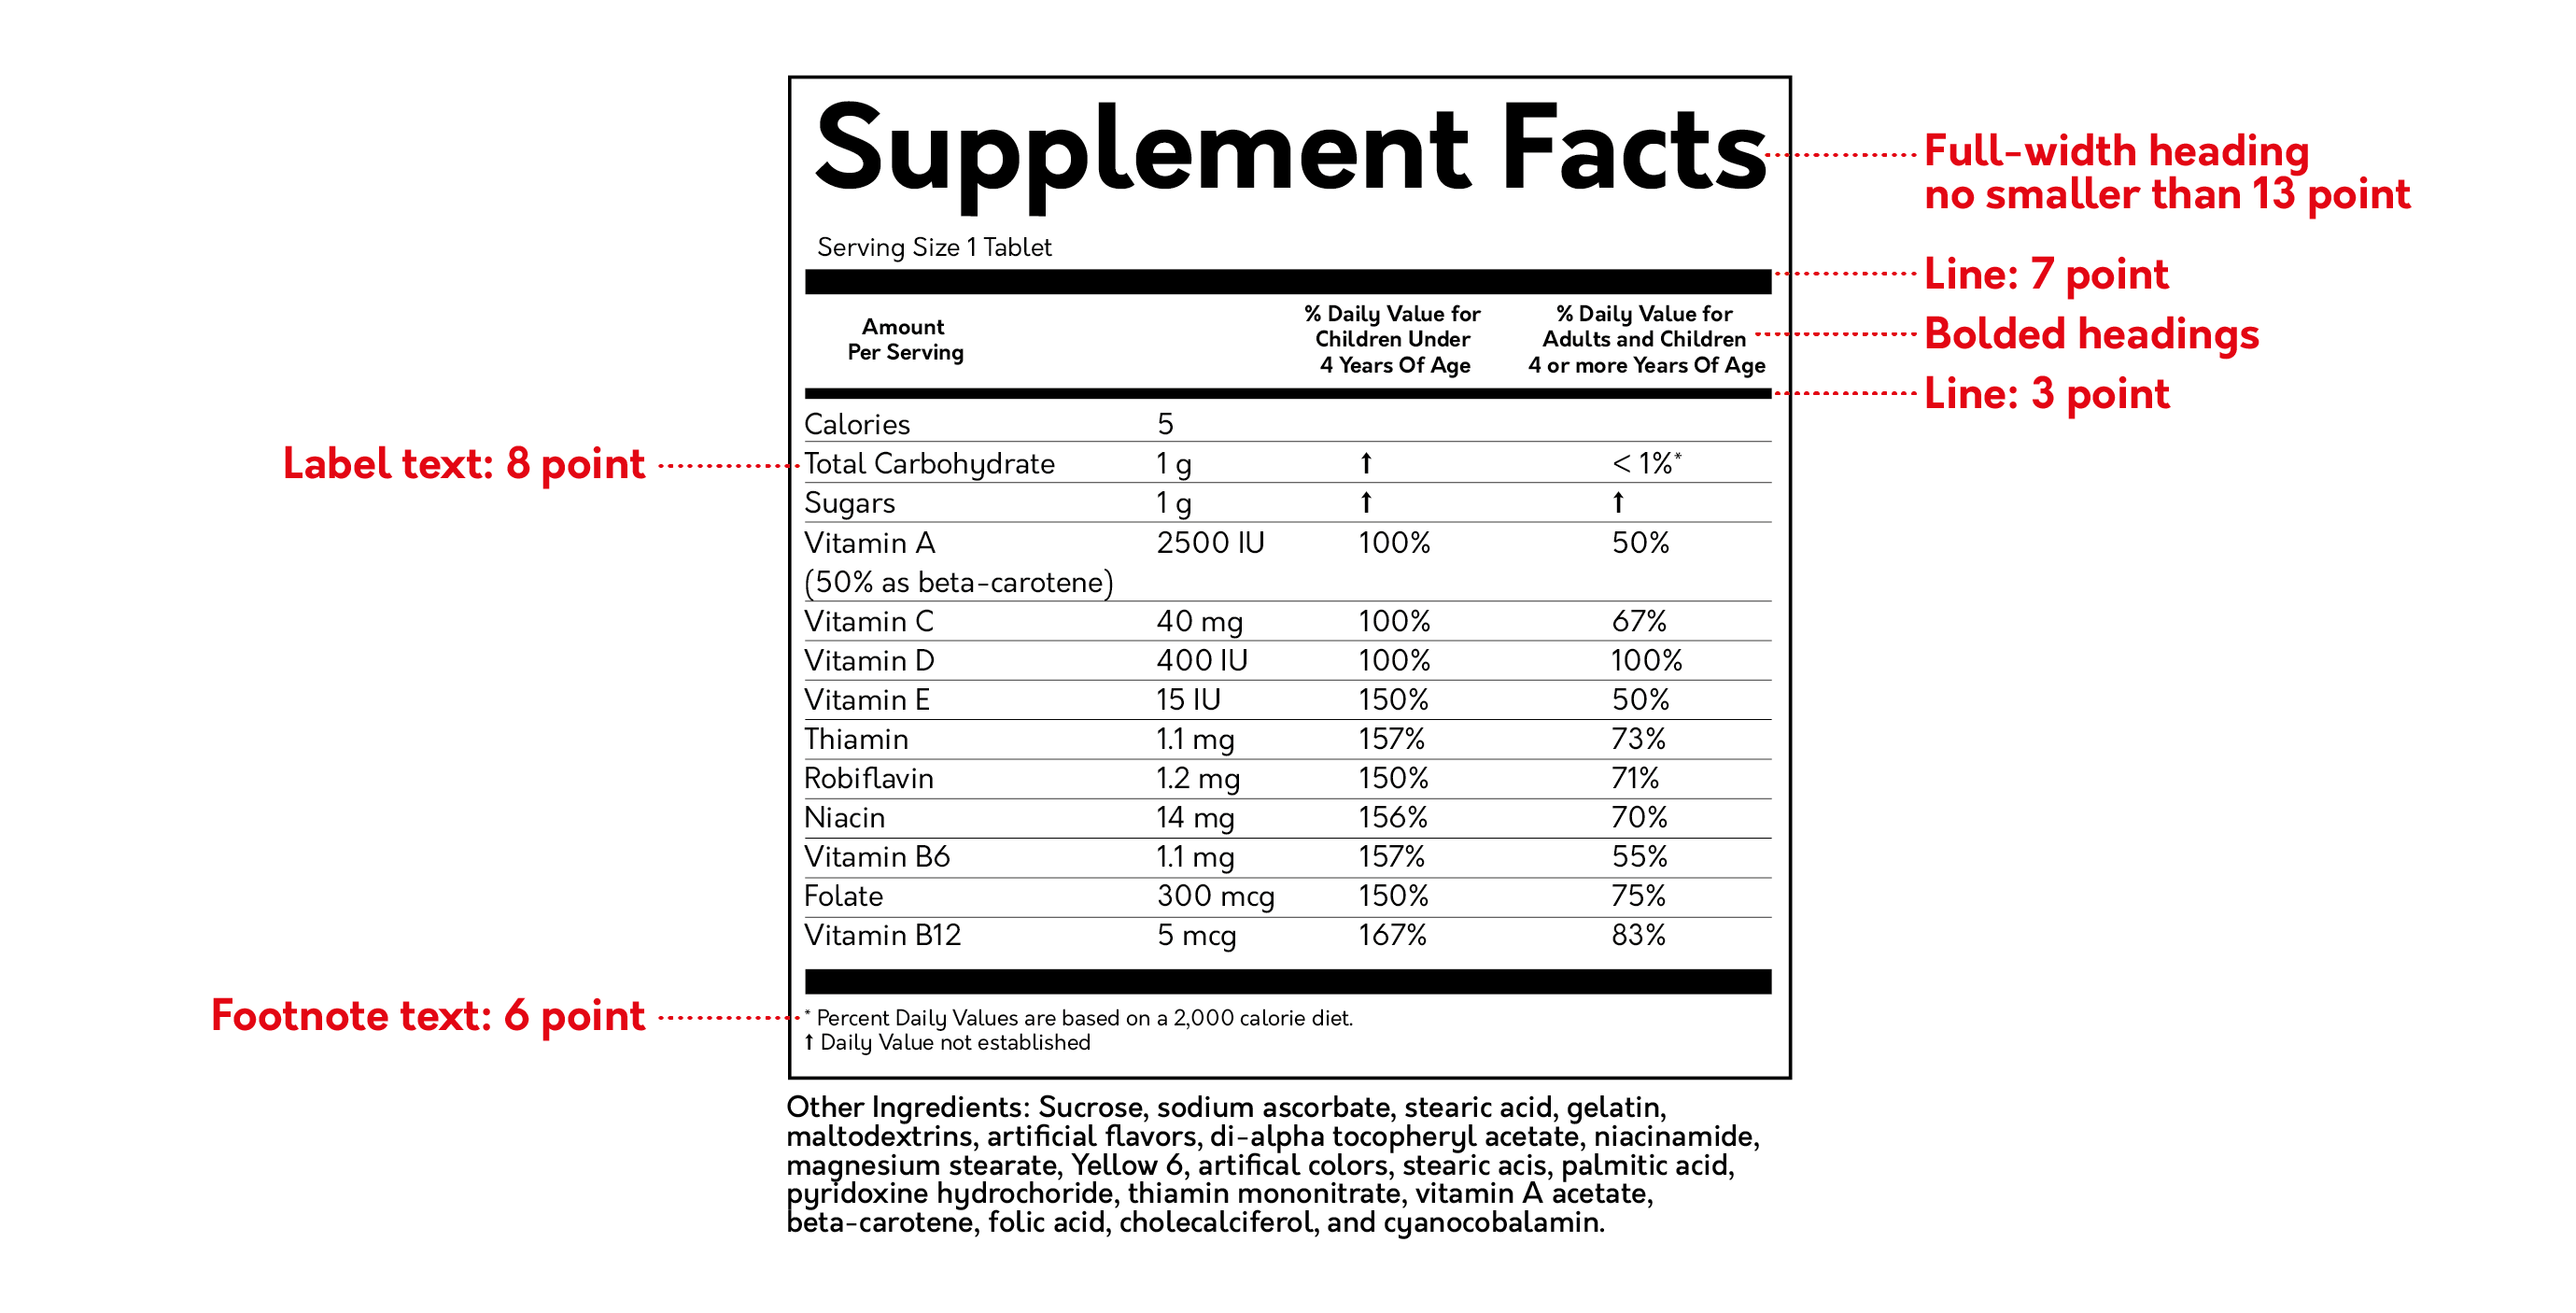 Supplement Facts - Your Go-to Handbook of FDA's Labeling Requirements For Dietary Supplements